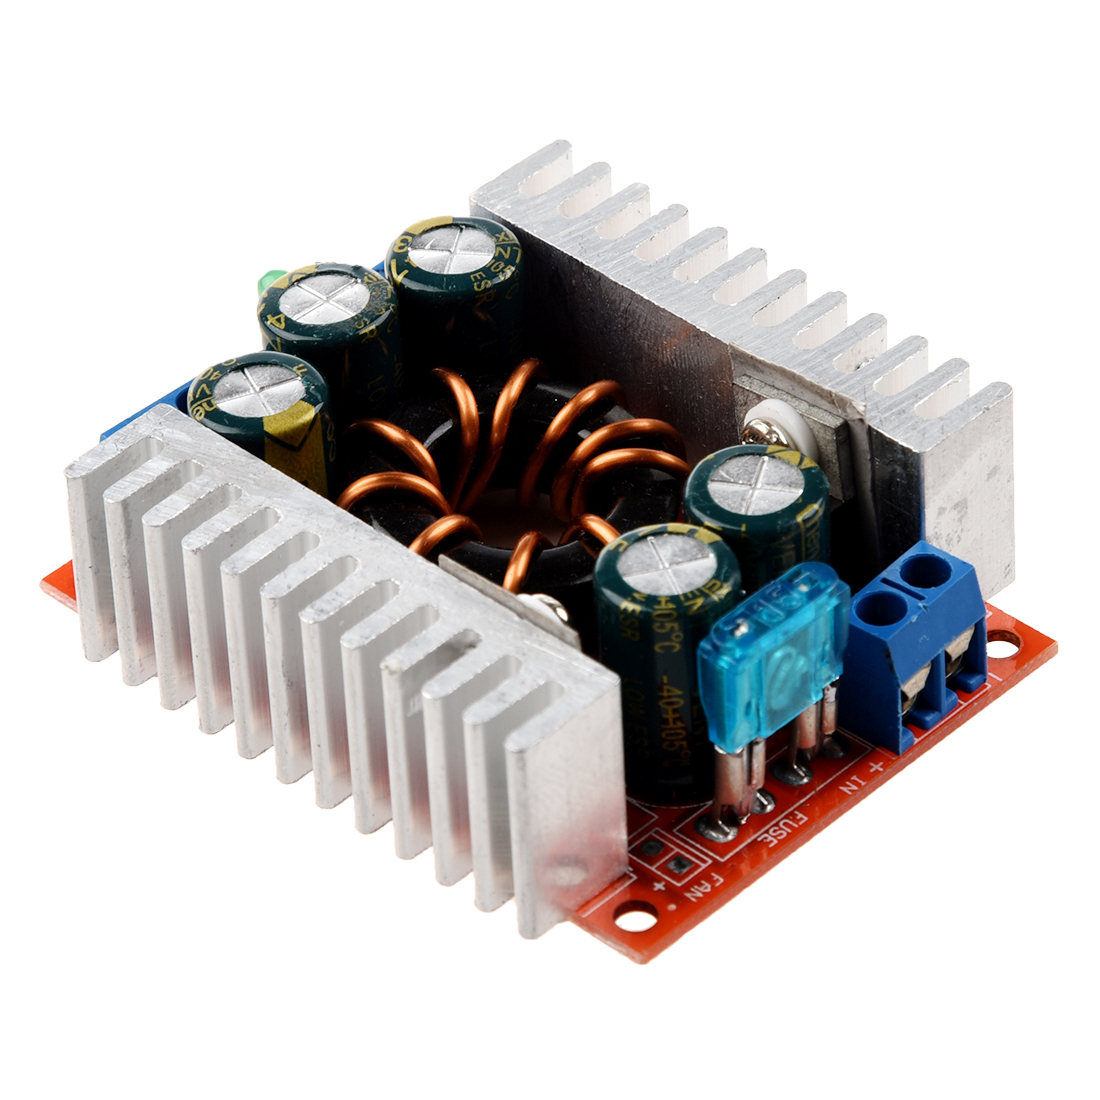 Hot Sale DC/DC 15A Buck Adjustable 4-32V 12V to 1.2-32V 5V Converter Step Down ModuleHot Sale DC/DC 15A Buck Adjustable 4-32V 12V to 1.2-32V 5V Converter Step Down Module